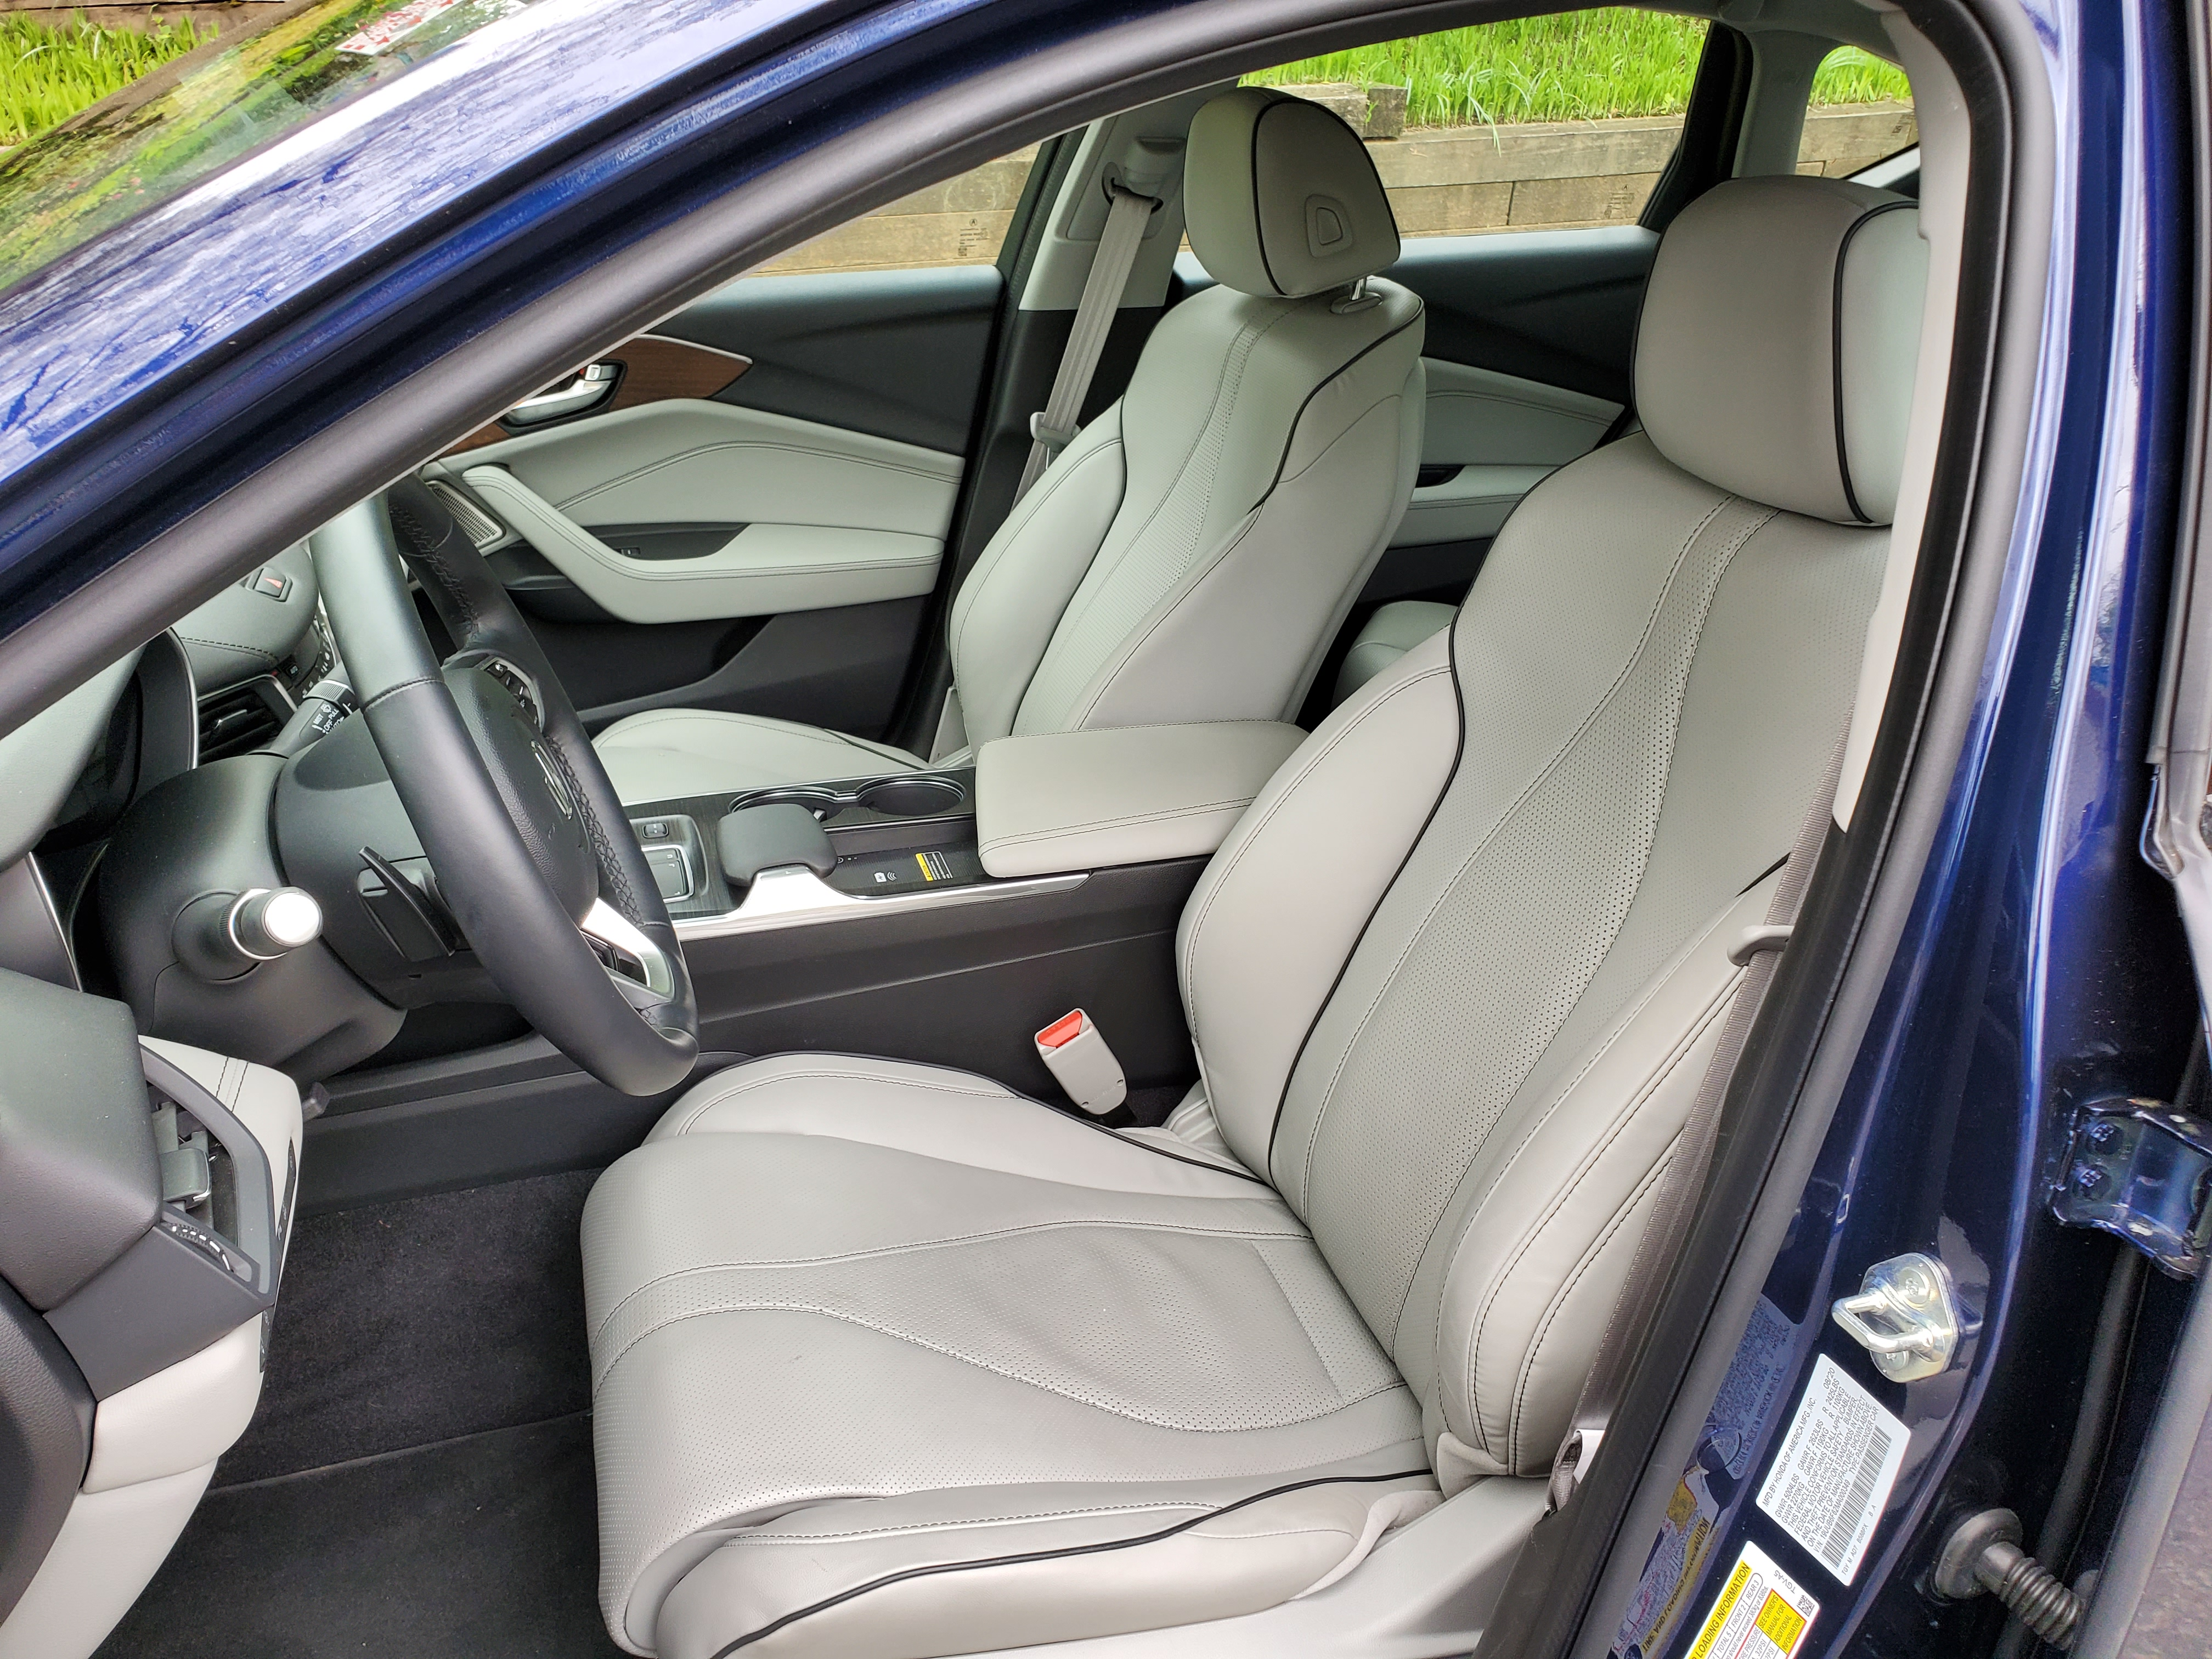 2021 Acura TLX front seating